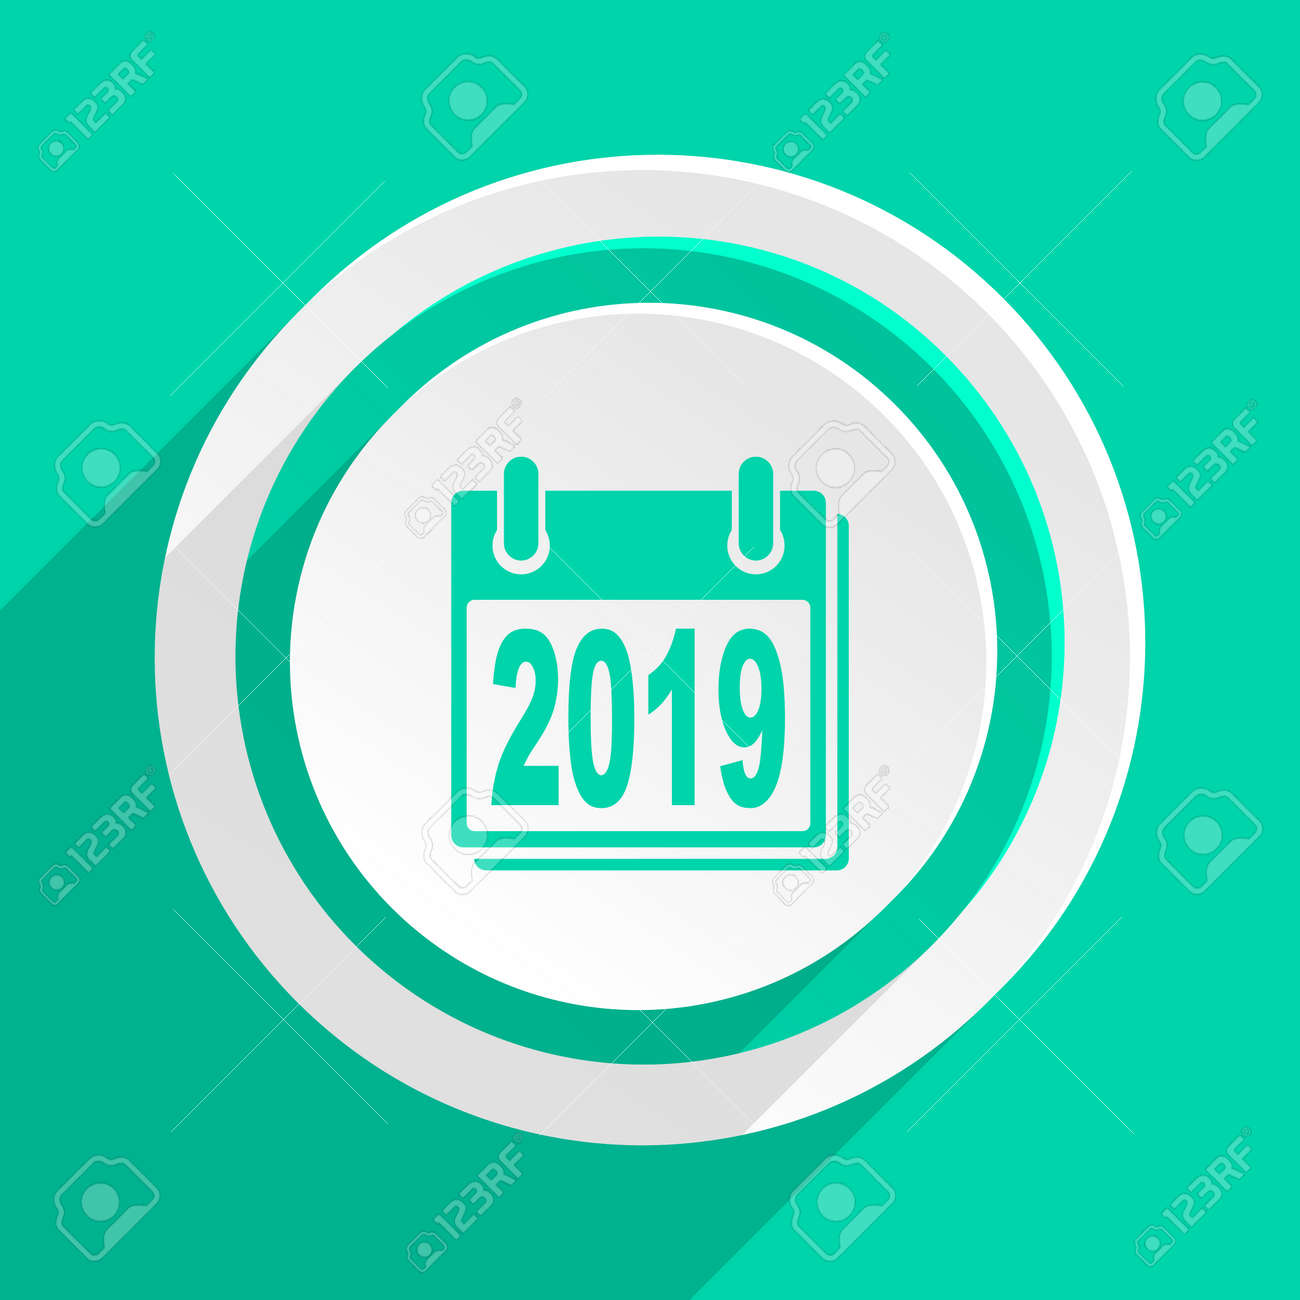 new year 2019 flat design modern web icon with shadow for internet